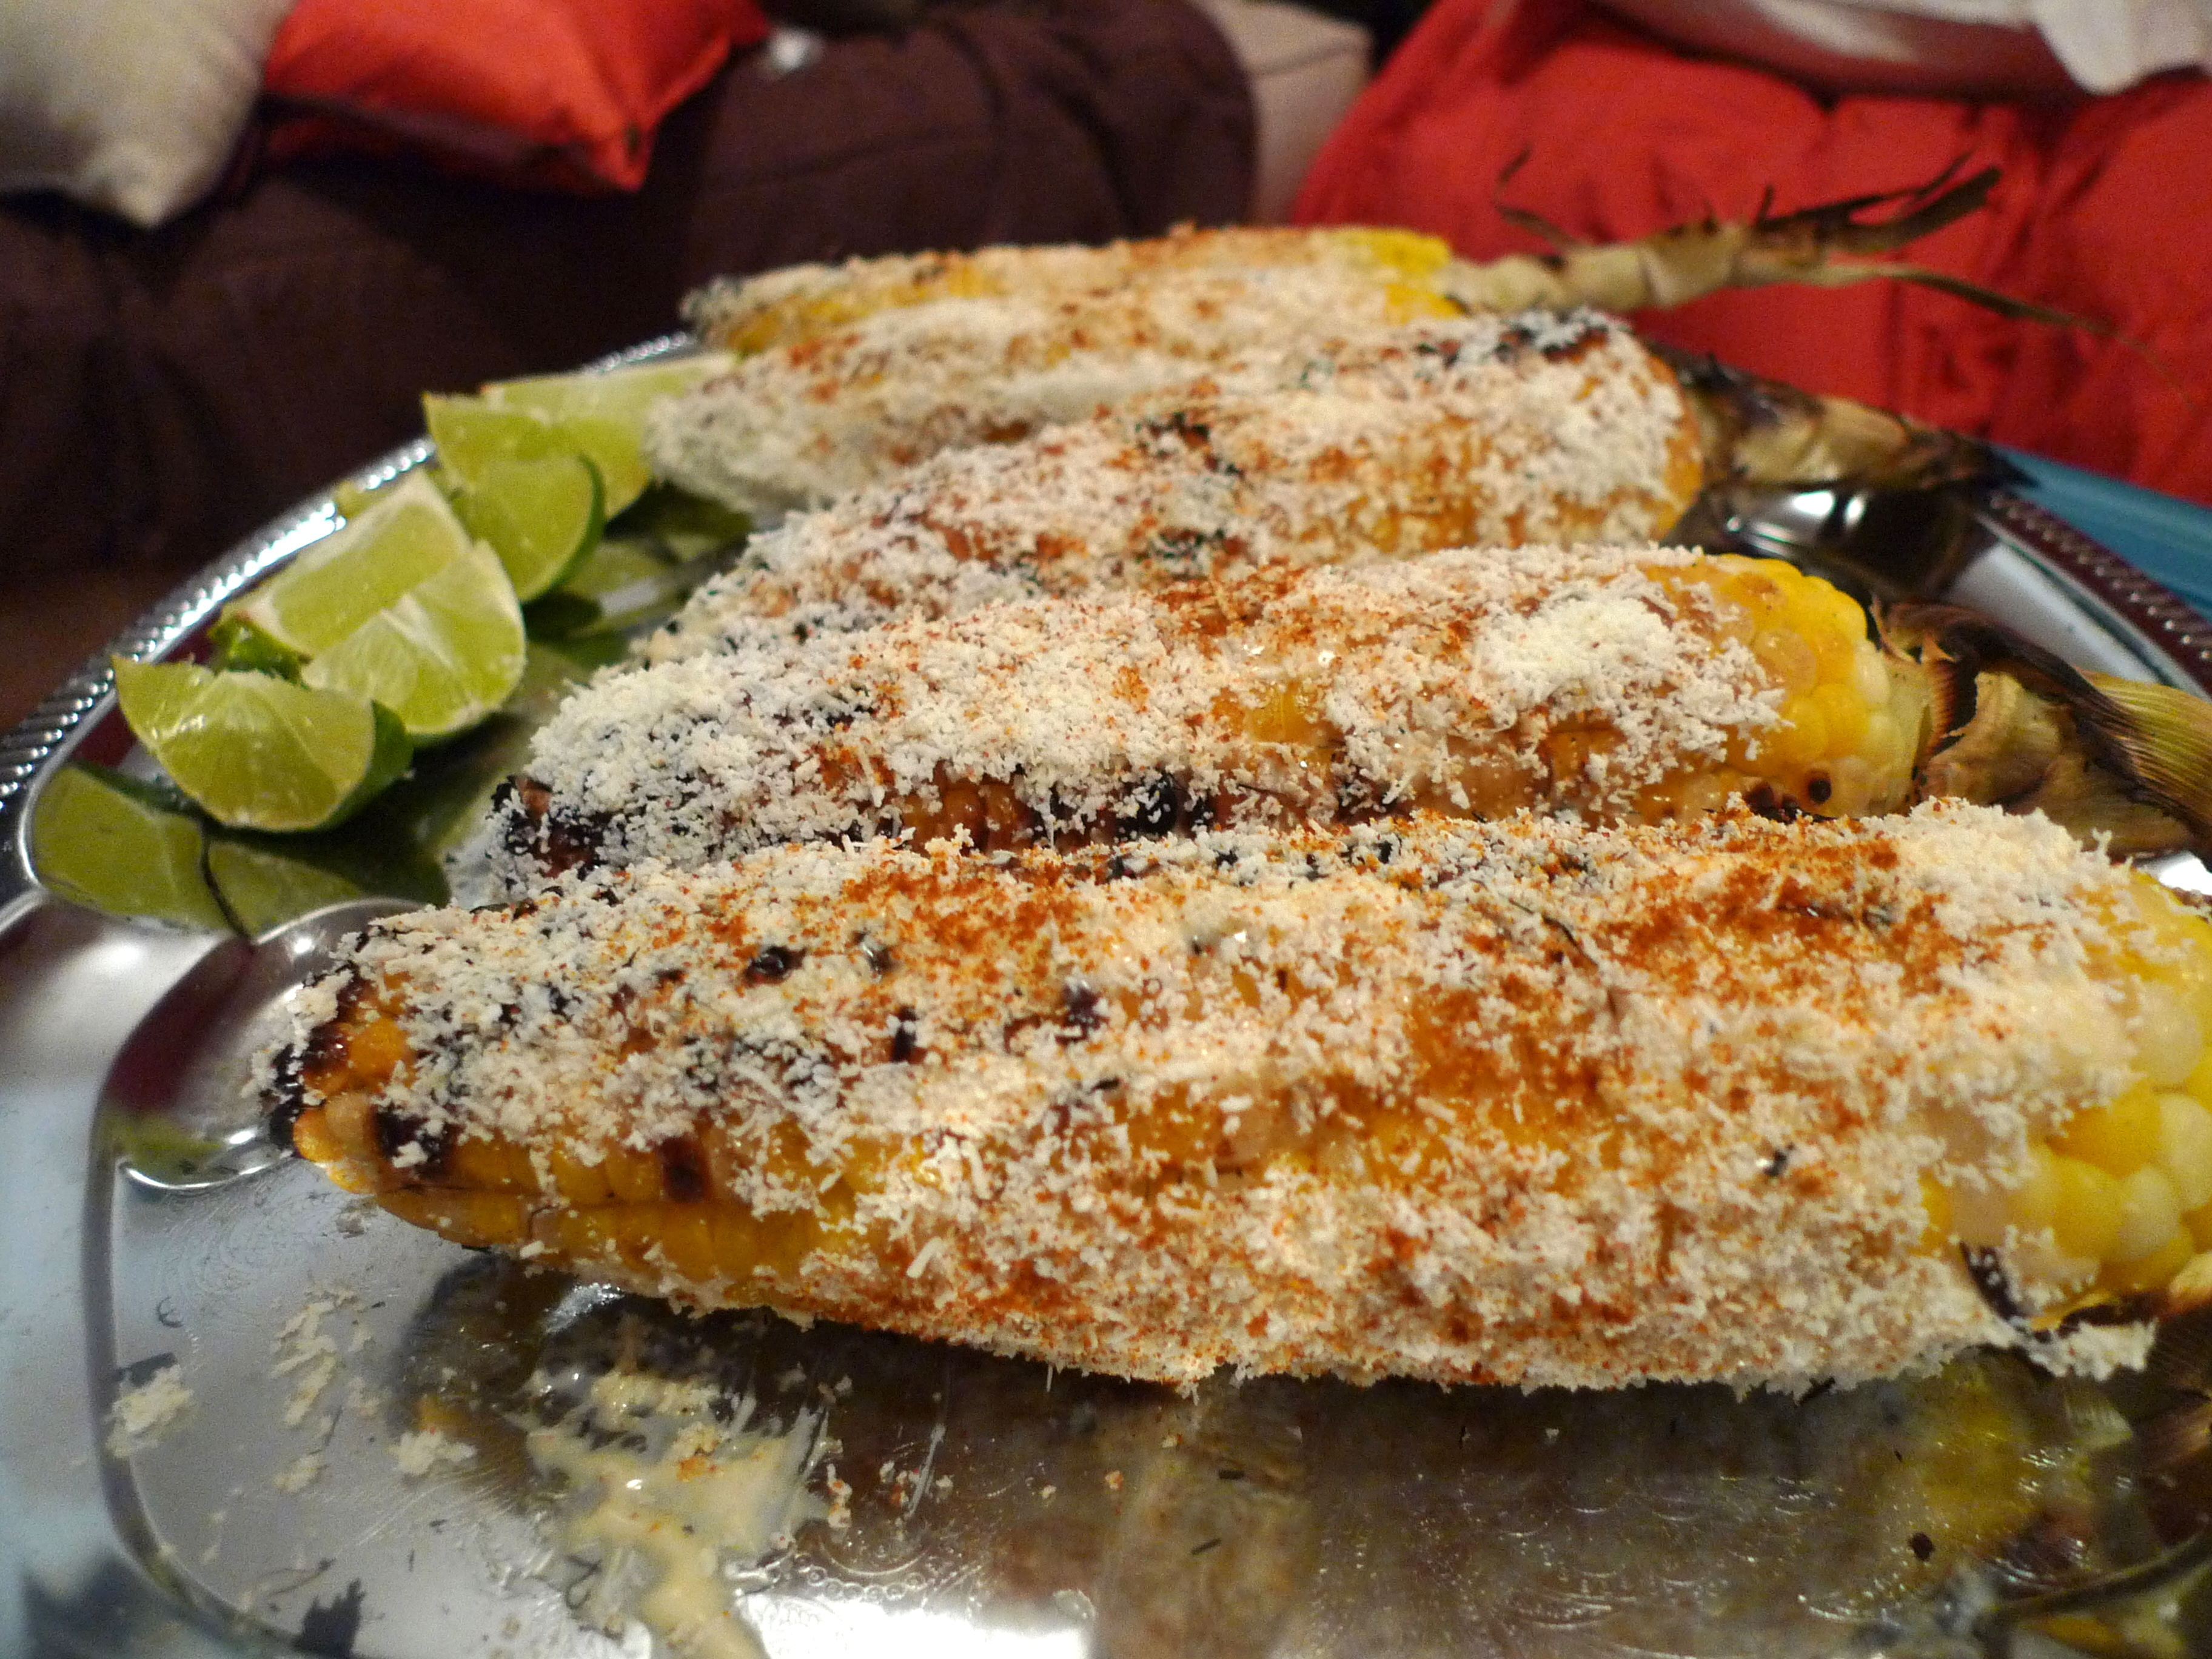 serve with lime wedges and sprinkle additional cayenne